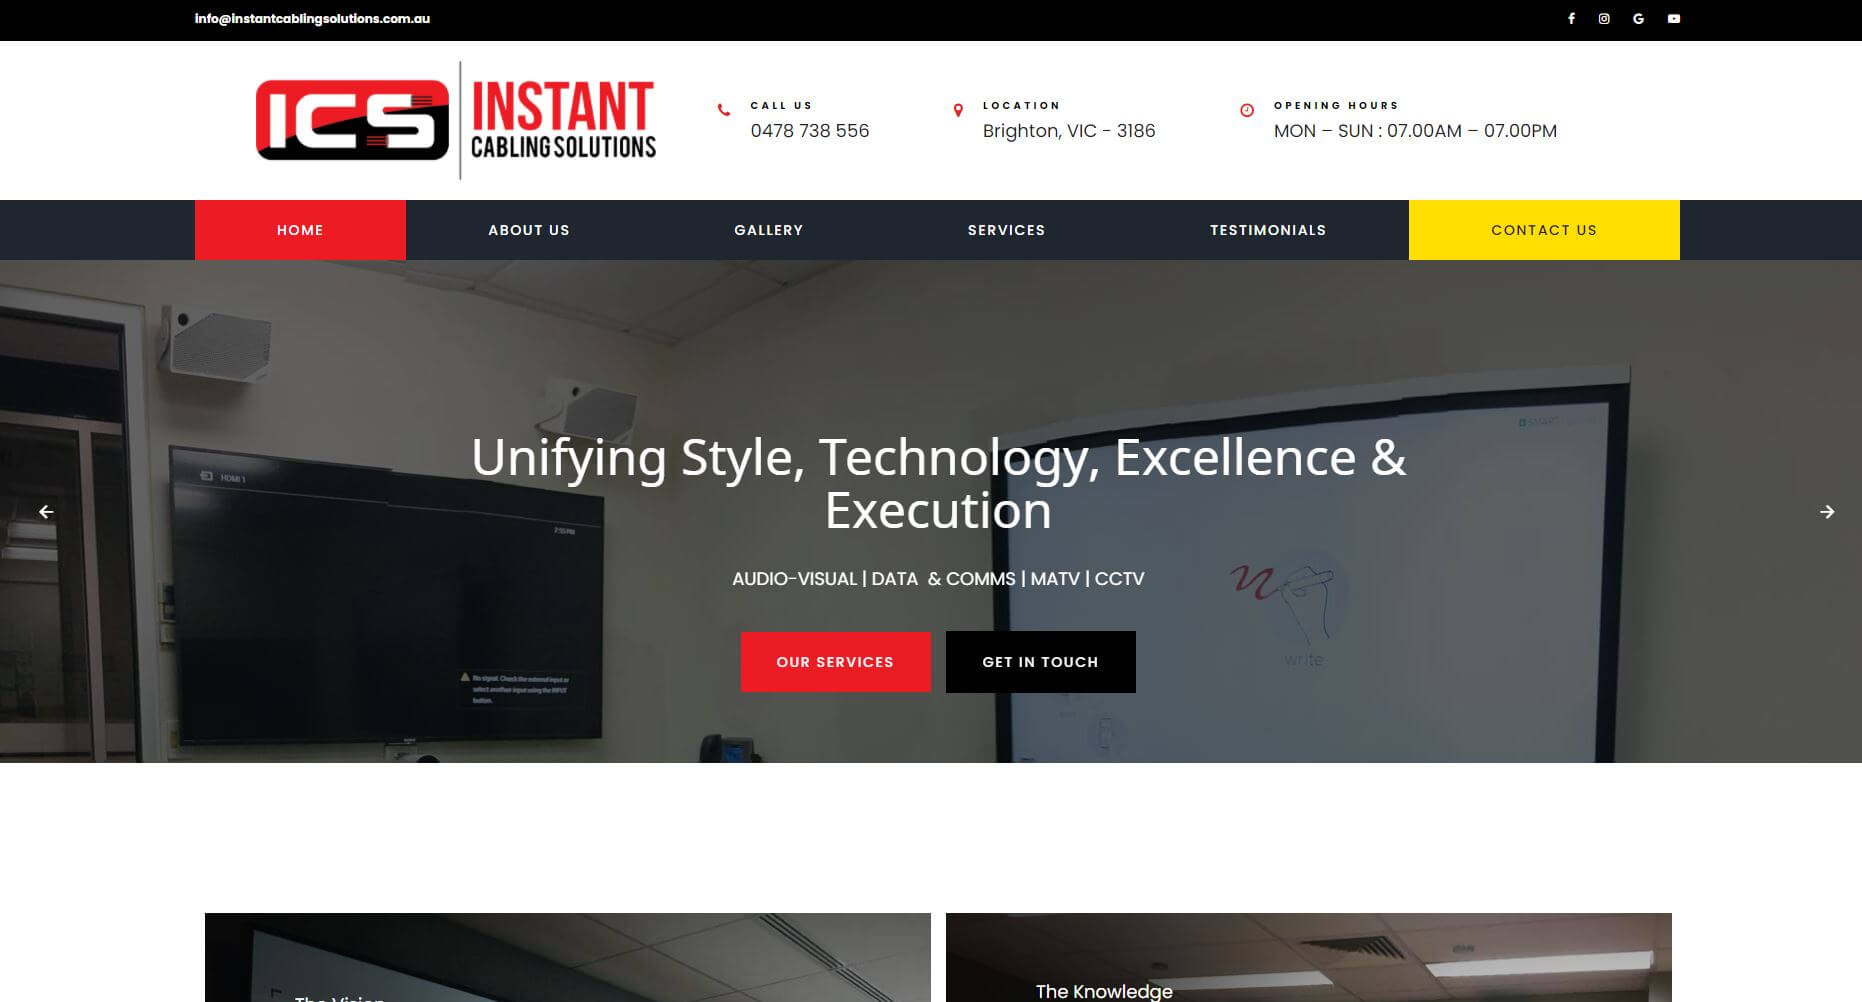 Instant Cabling Solutions